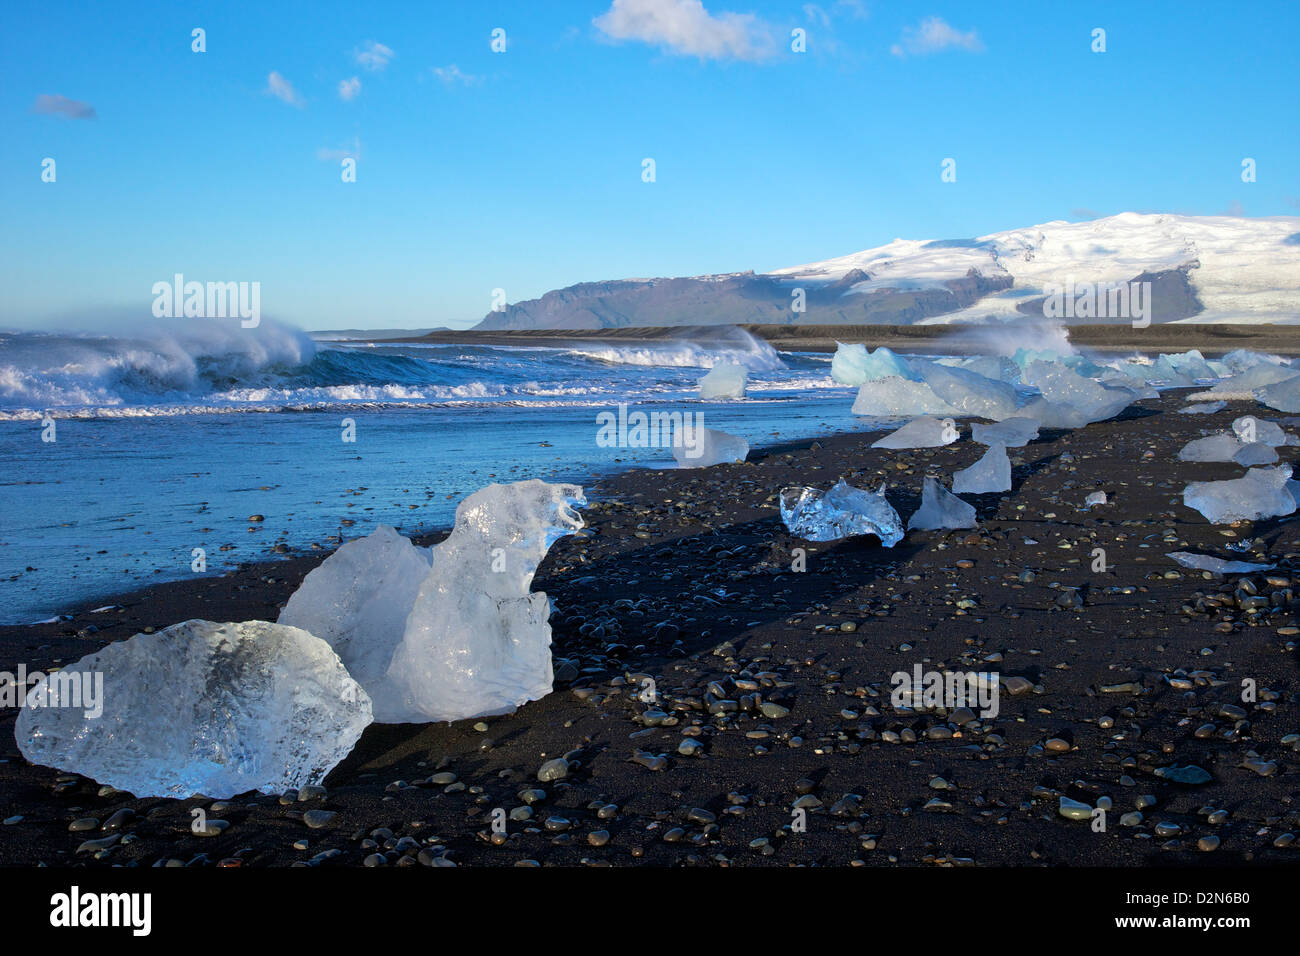 Icebergs on volcanic sand beach at Jokulsarlon with snow on the massive icecap of Vatnajokull behind, Iceland, Polar - Stock Image